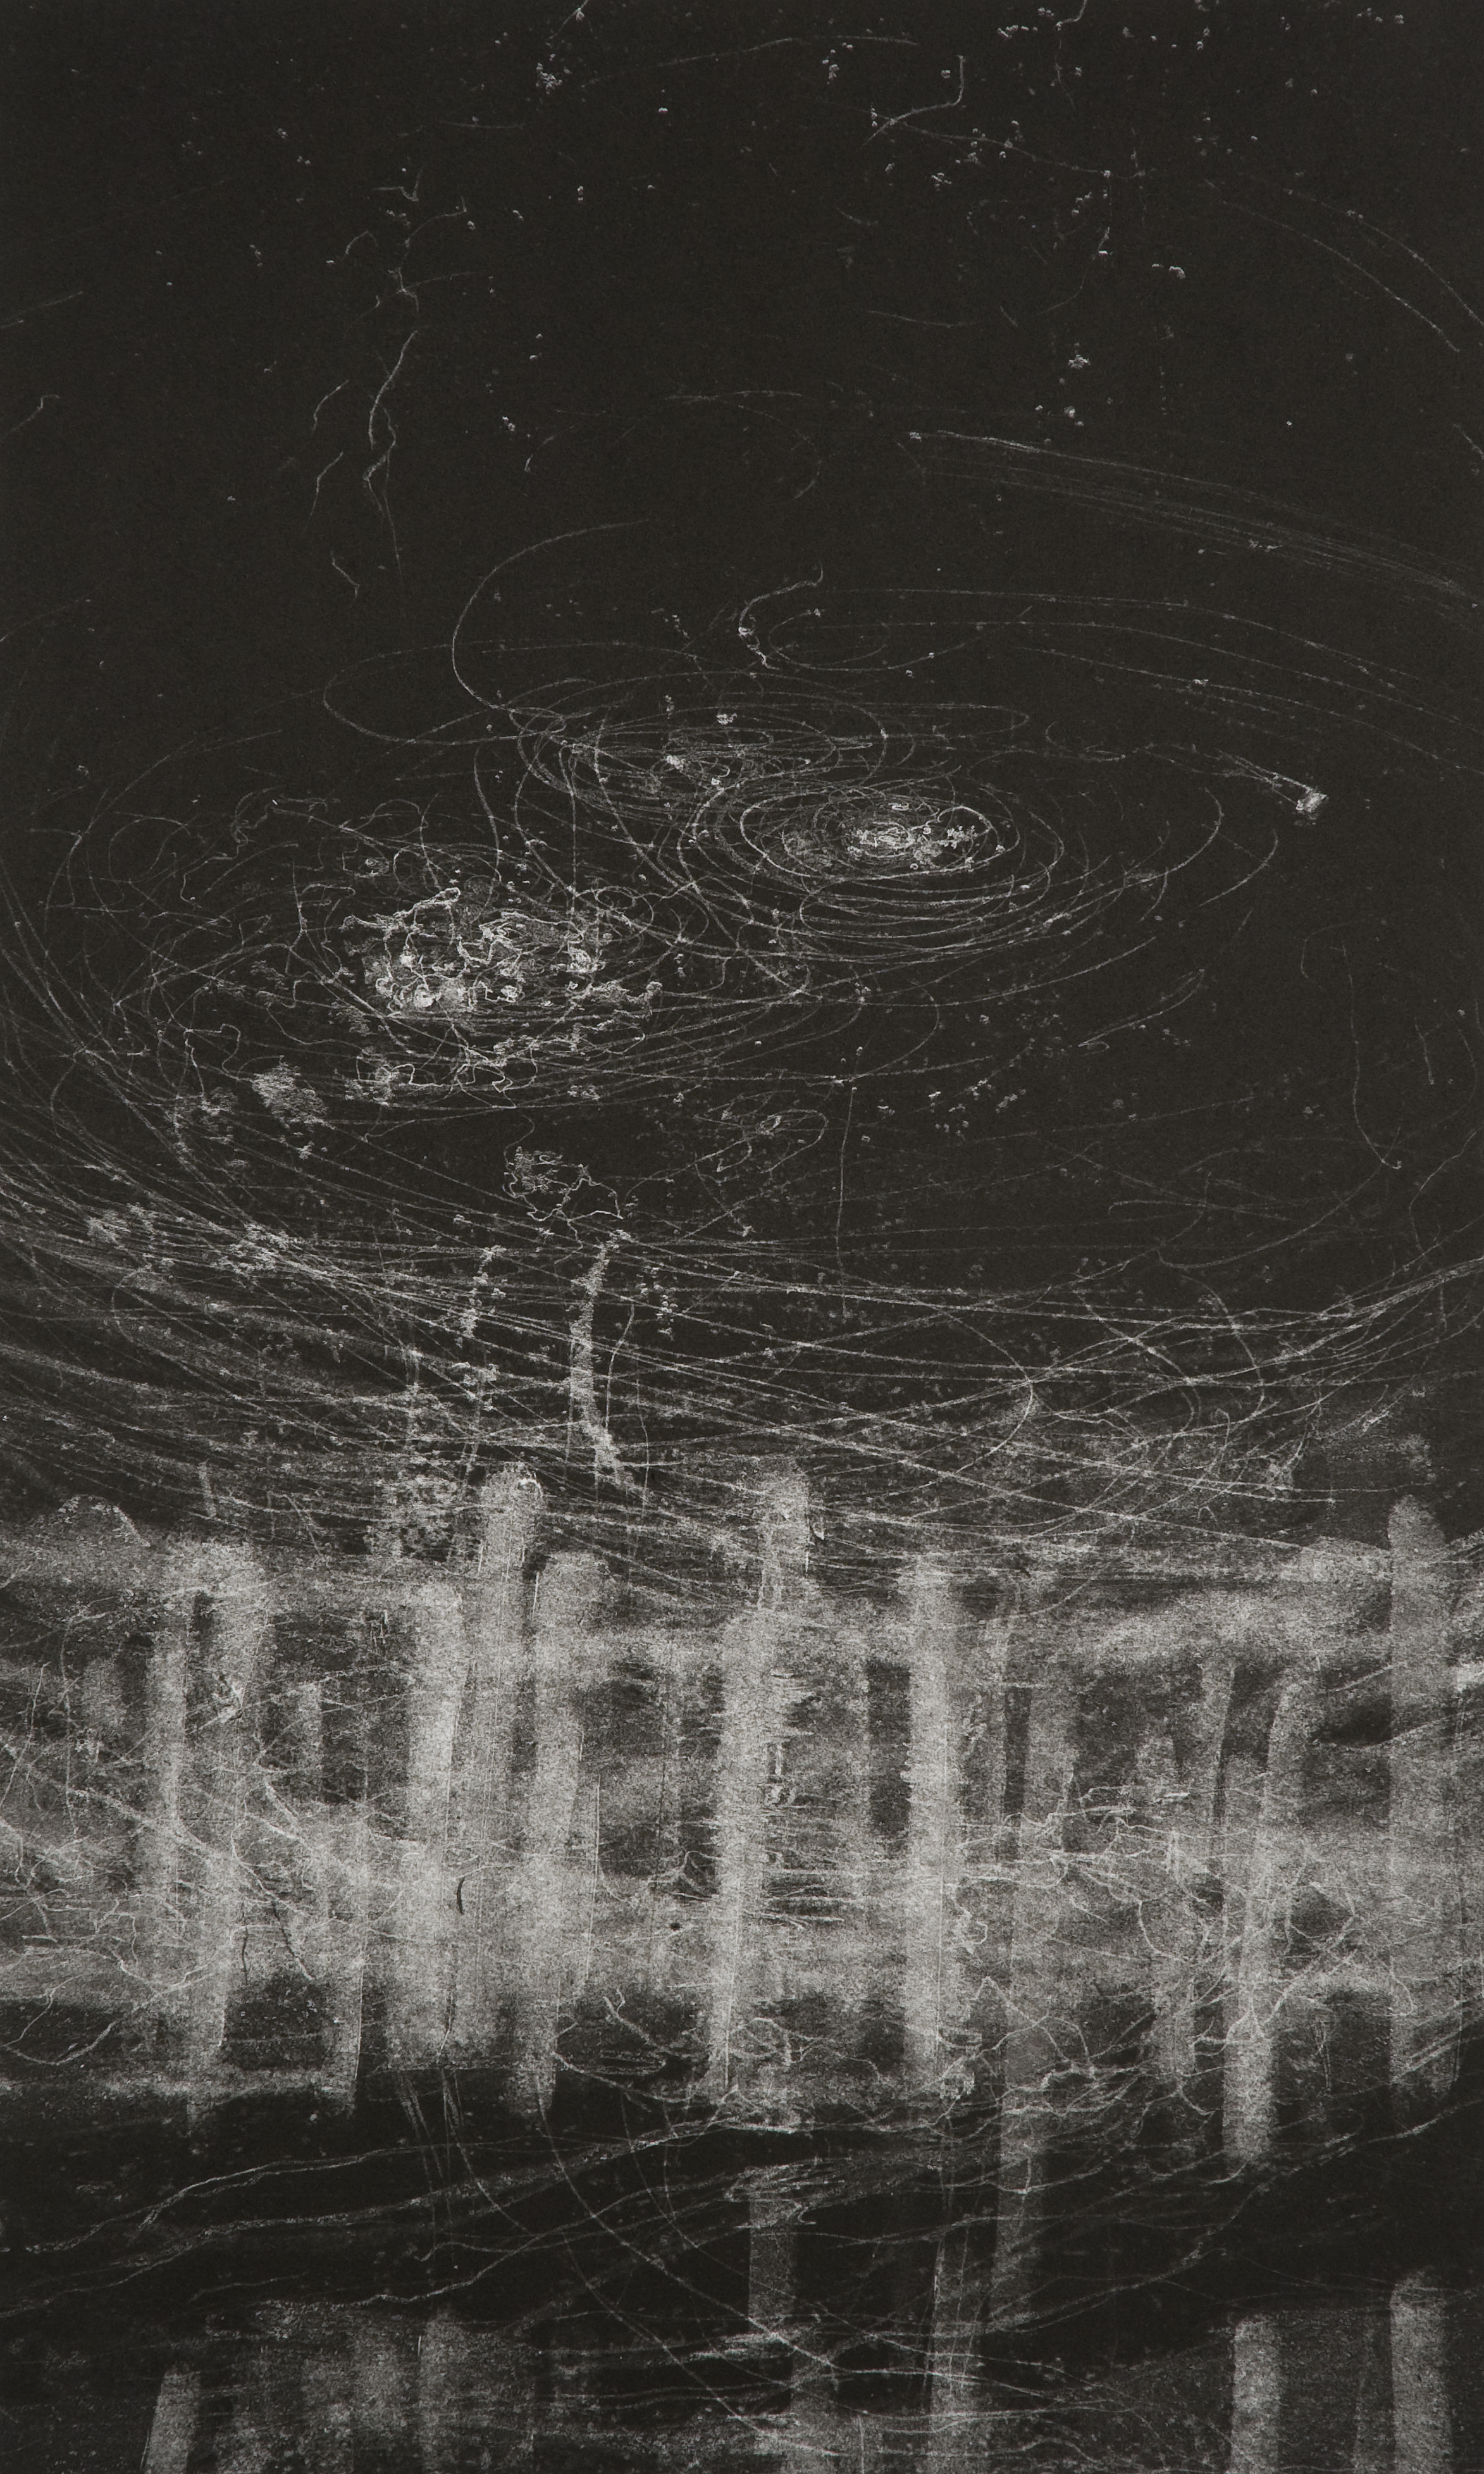 Hilda Shen,  Illumined Triptych (middle) , 2010. Set of 3 unique monotypes, 15 x 25 inches, ©Hilda Shen, courtesy of Fou Gallery